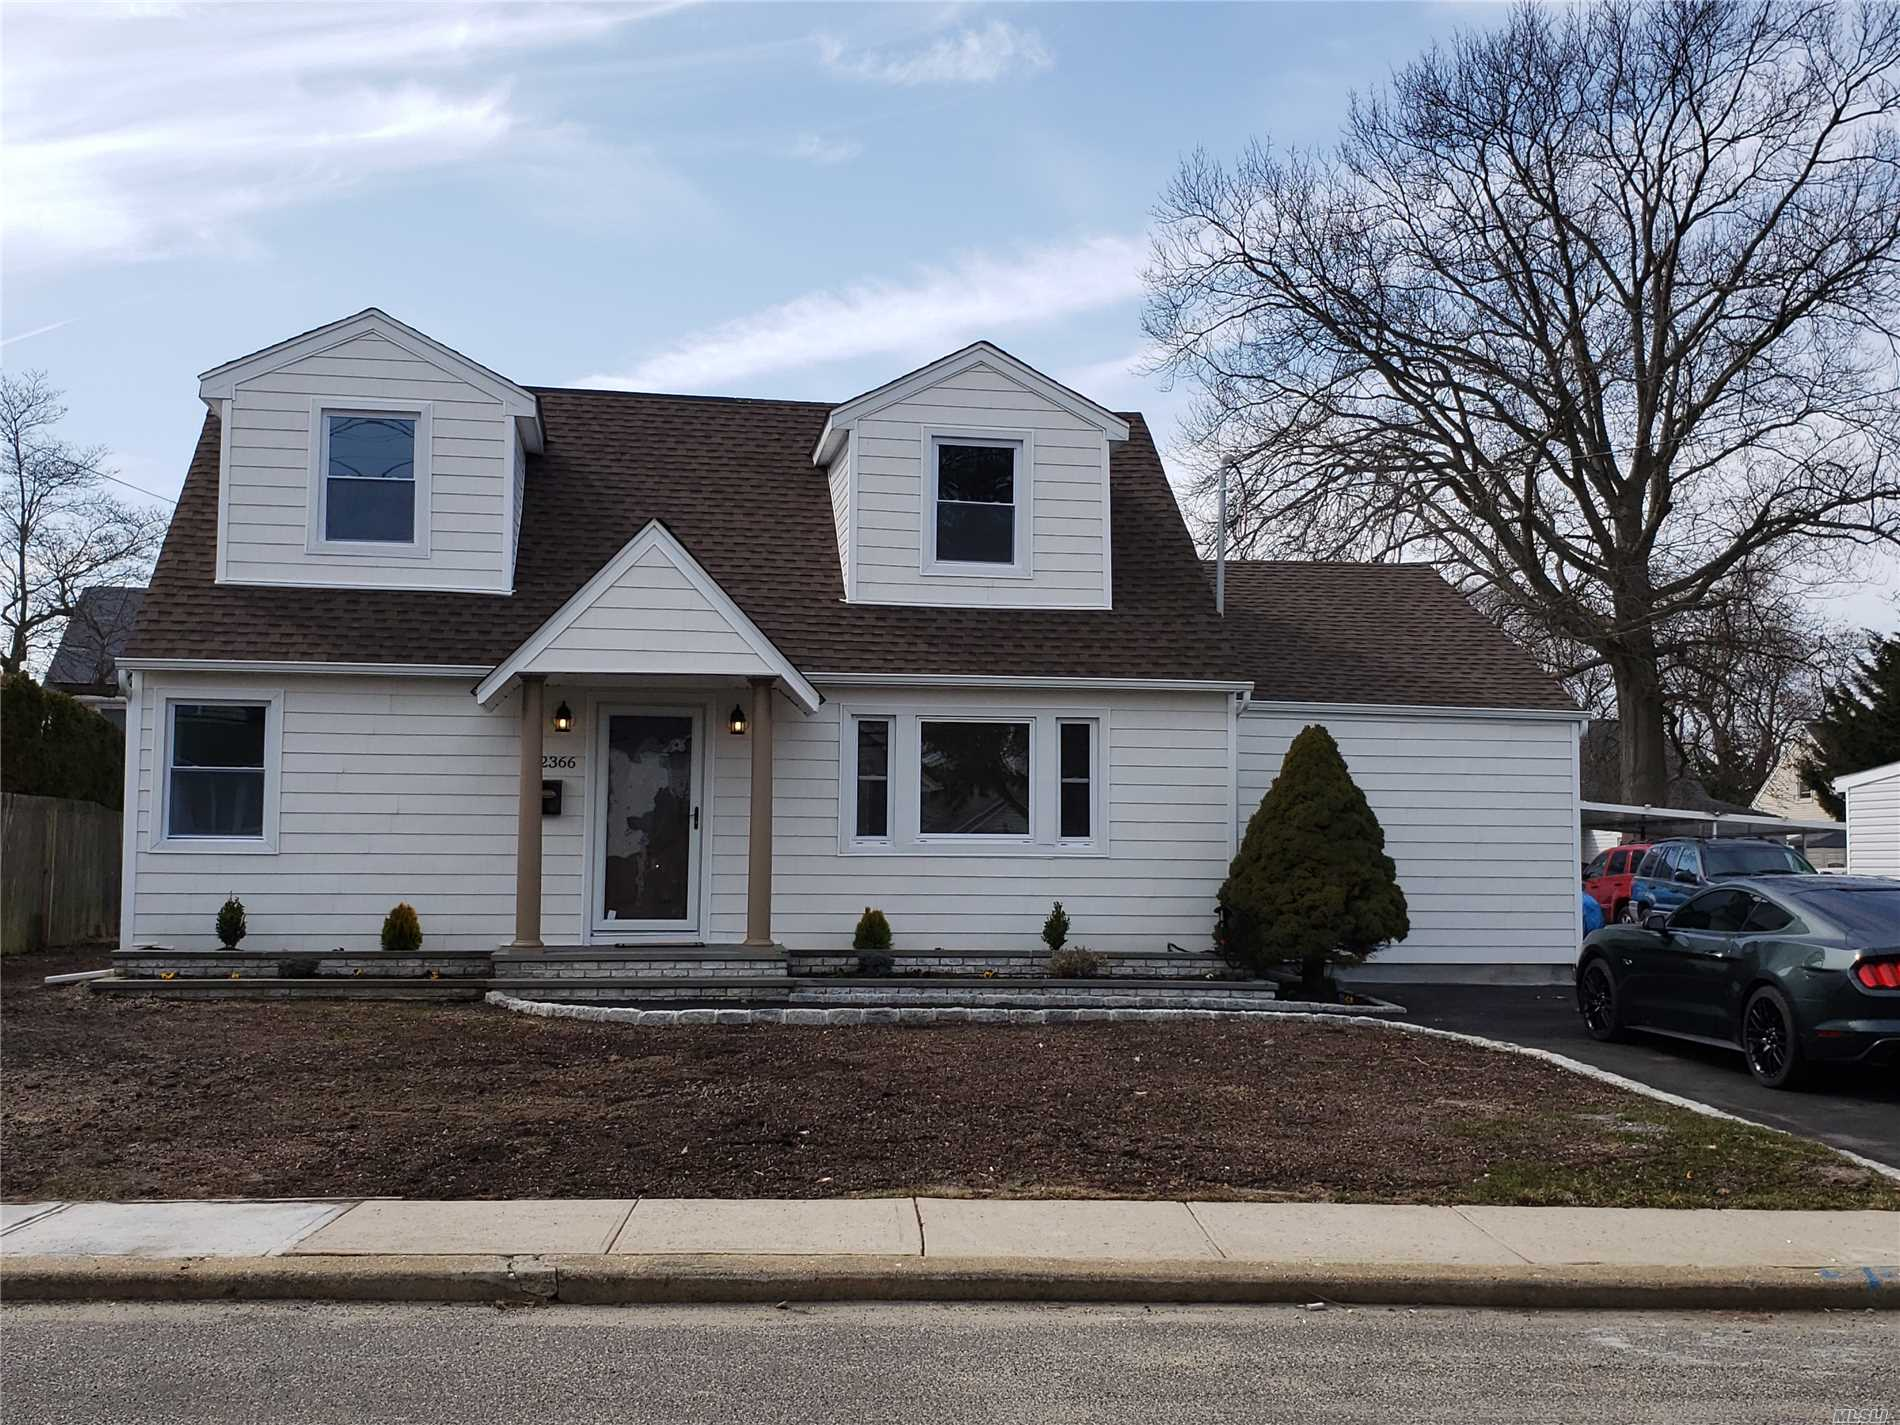 Diamond 4 bedroom Cape..Totally renovated. No expense spared. 2 new bathrooms, new roof, new siding, new windows, new gutters, new driveway, new heating system, new hot water tank, new driveway, newly upgraded 200 amp service, new ductless air conditioning system, gleaming hardwood floors, beautiful kitchen with granite and new S/S appliances. NOT in flood Zone(Zone X). Won't last! Call to schedule a viewing now! $499, 990